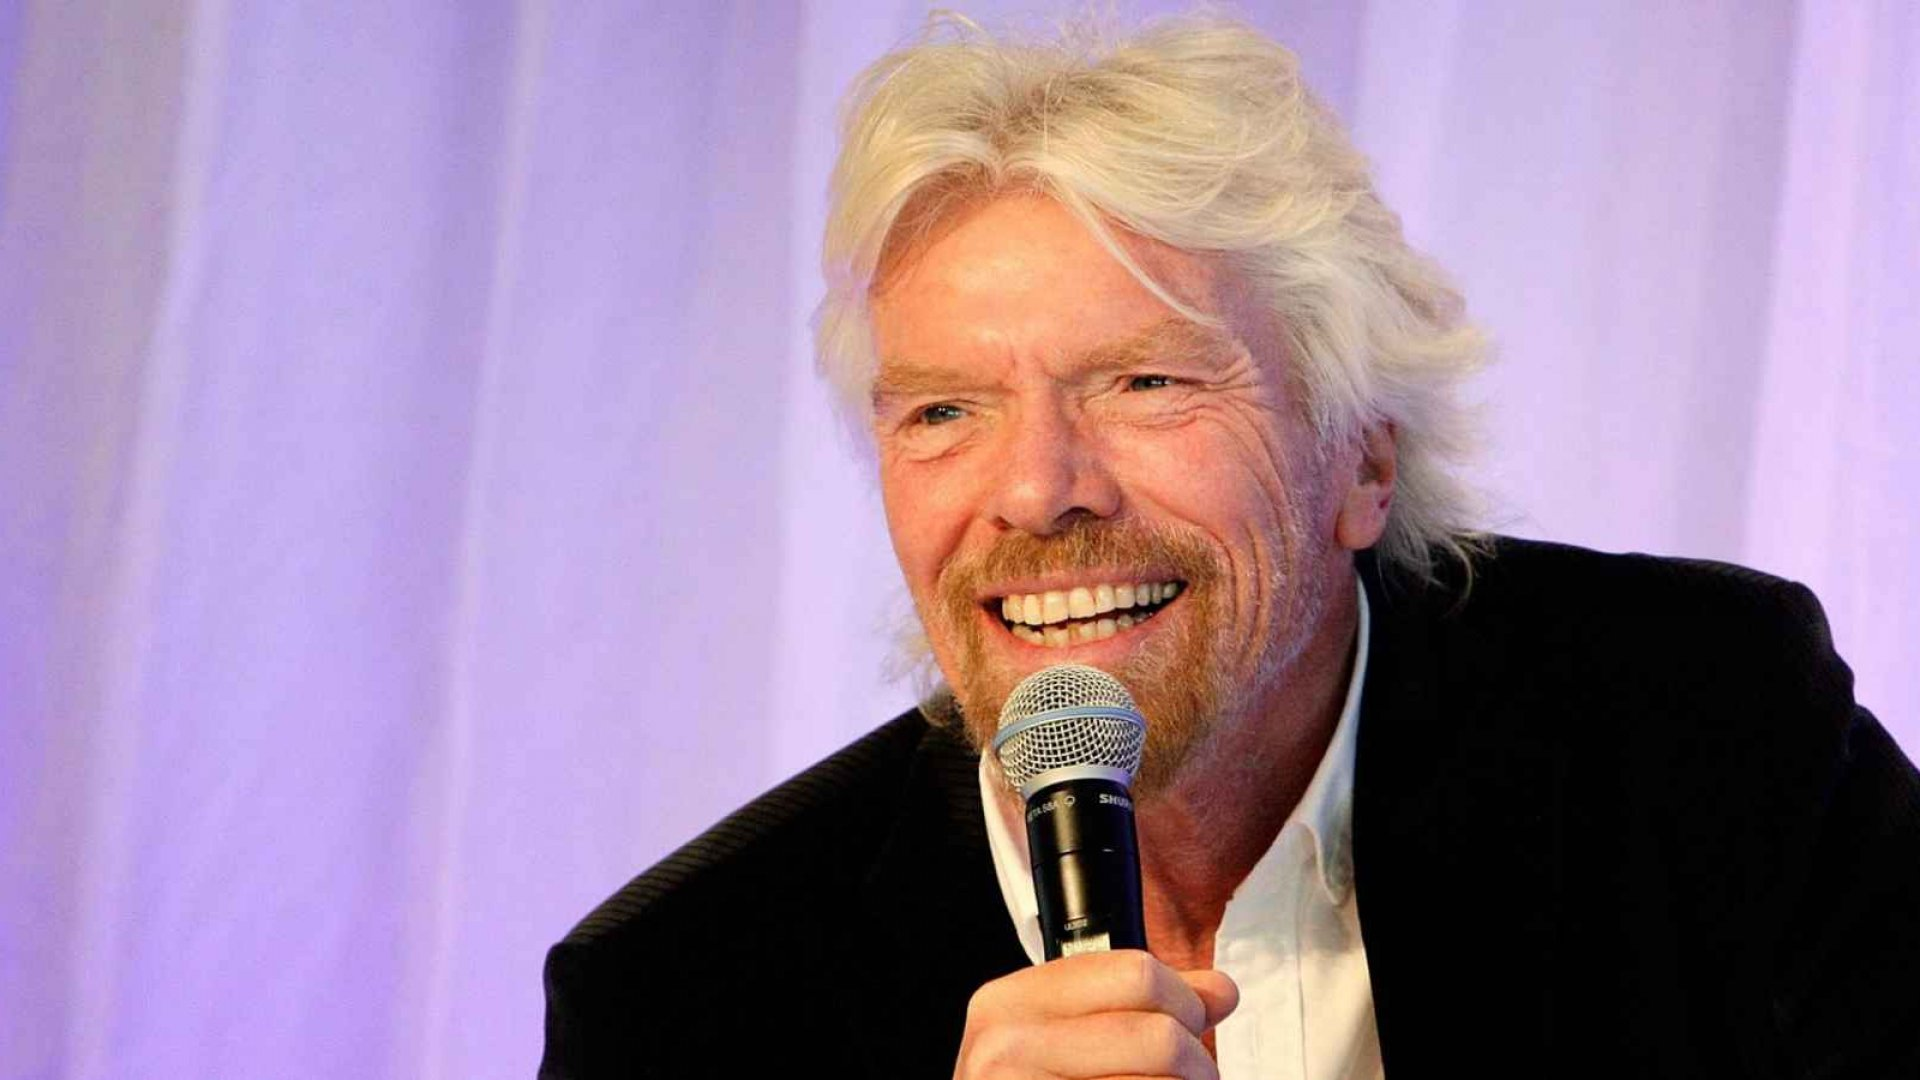 Richard Branson Endorses Hillary Clinton for President